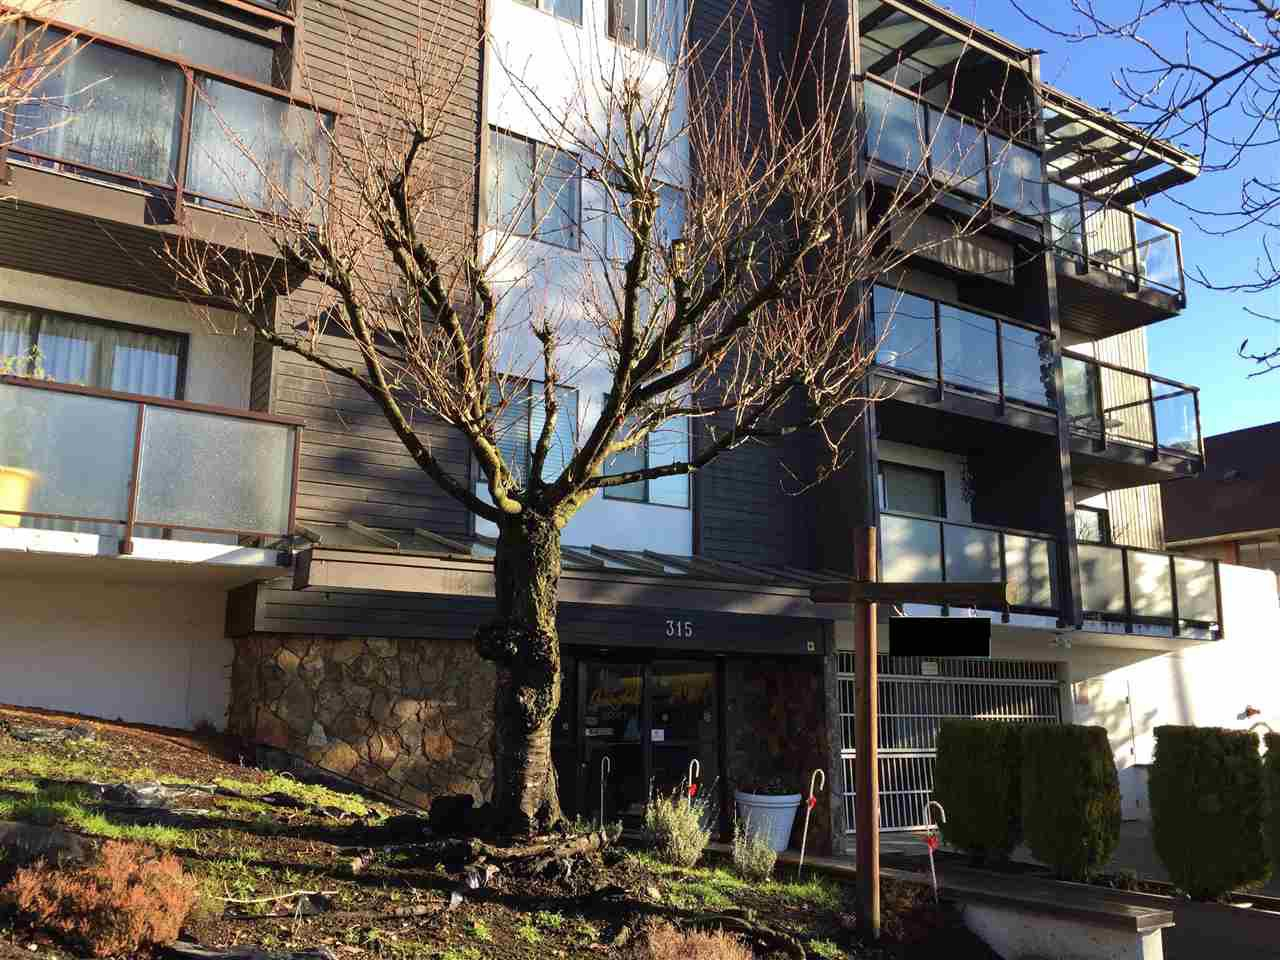 """Main Photo: 209 315 TENTH Street in New Westminster: Uptown NW Condo for sale in """"SPRINGBOK"""" : MLS®# R2140023"""